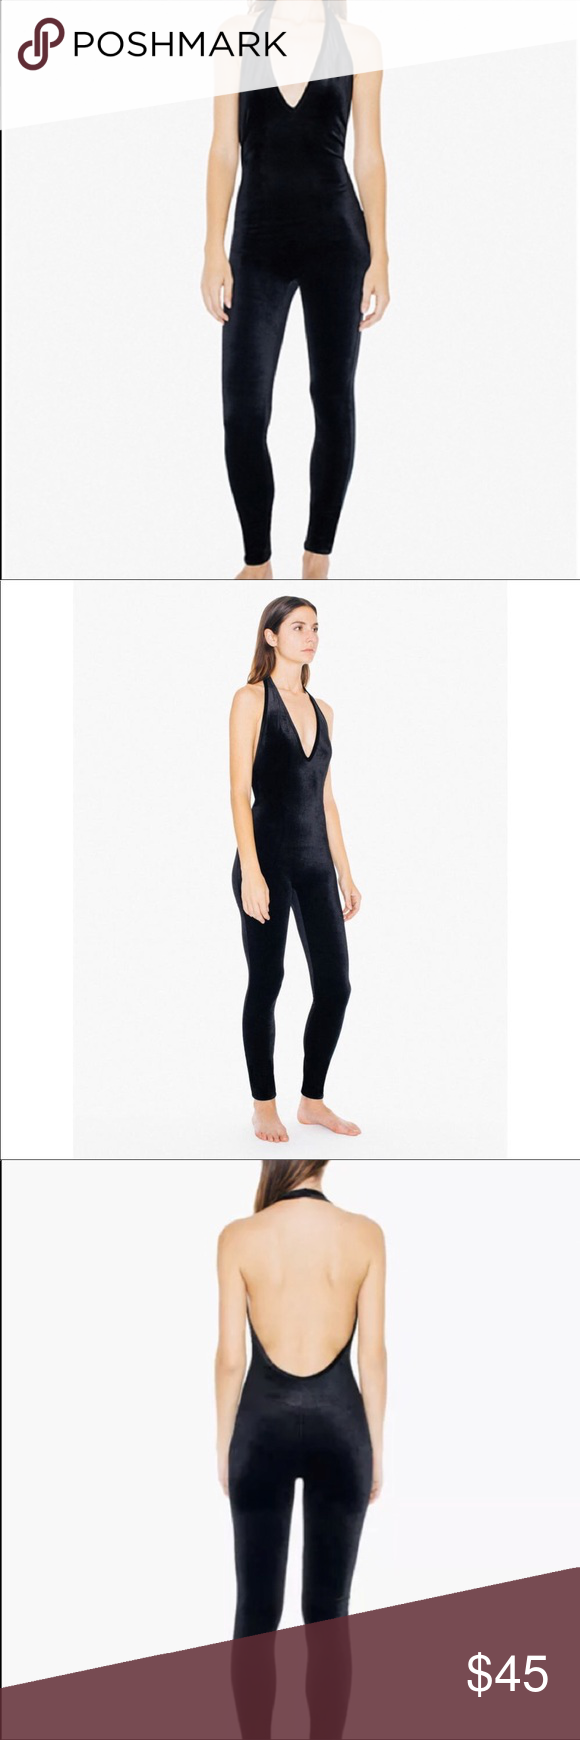 fbce9639908f American apparel velvet halter catsuit NWT Black American apparel velvet  halter catsuit 90% polyester 10% elastase American Apparel Pants Jumpsuits    ...